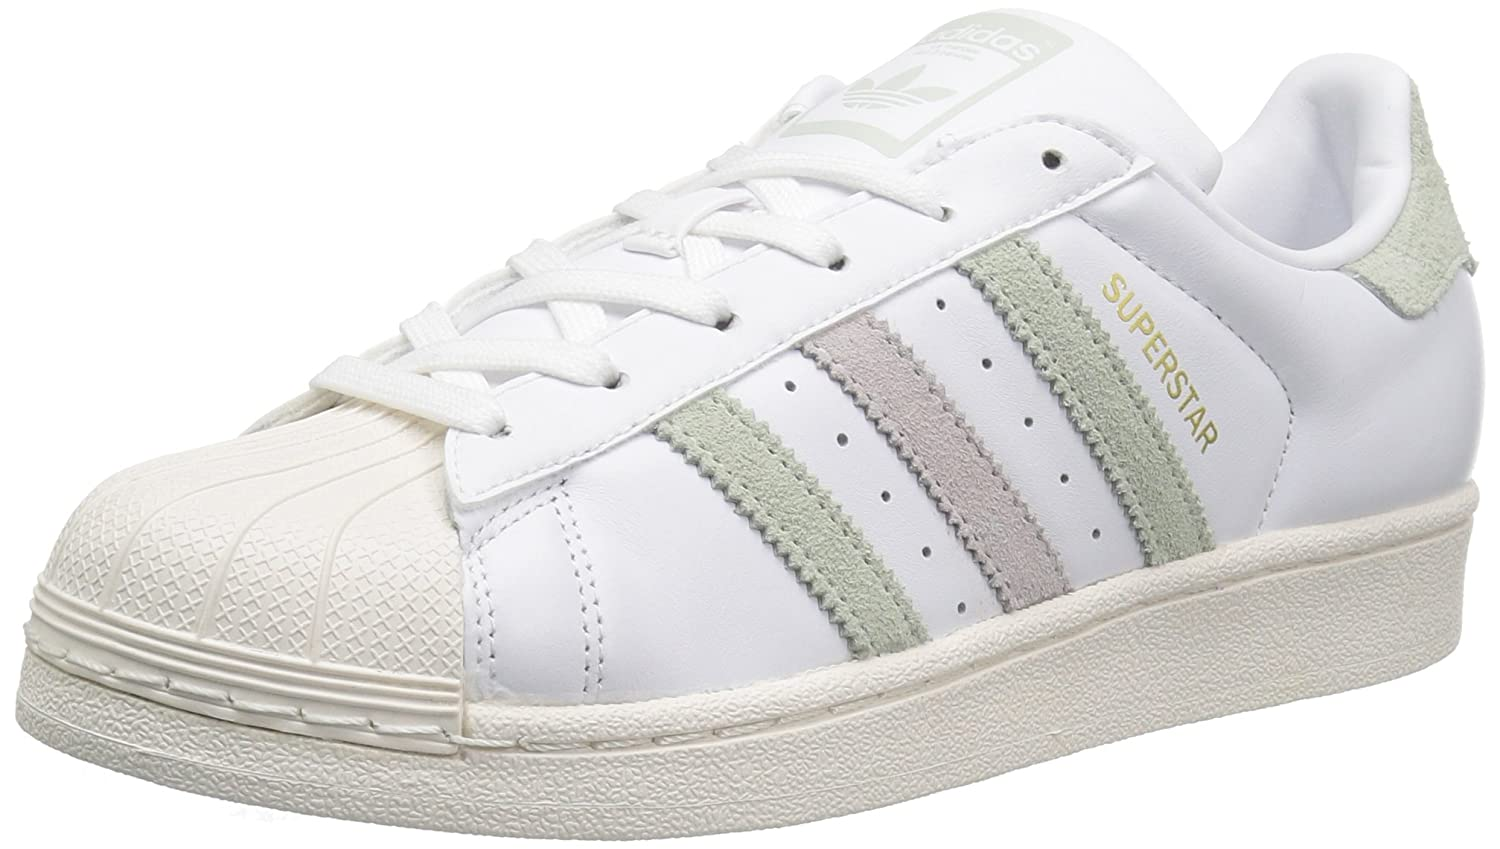 adidas Superstar W, Sneakers Basses Femme, W, Femme, Weiß White Superstar/Linen Green Ice Purple Fabric 1658c72 - shopssong.space